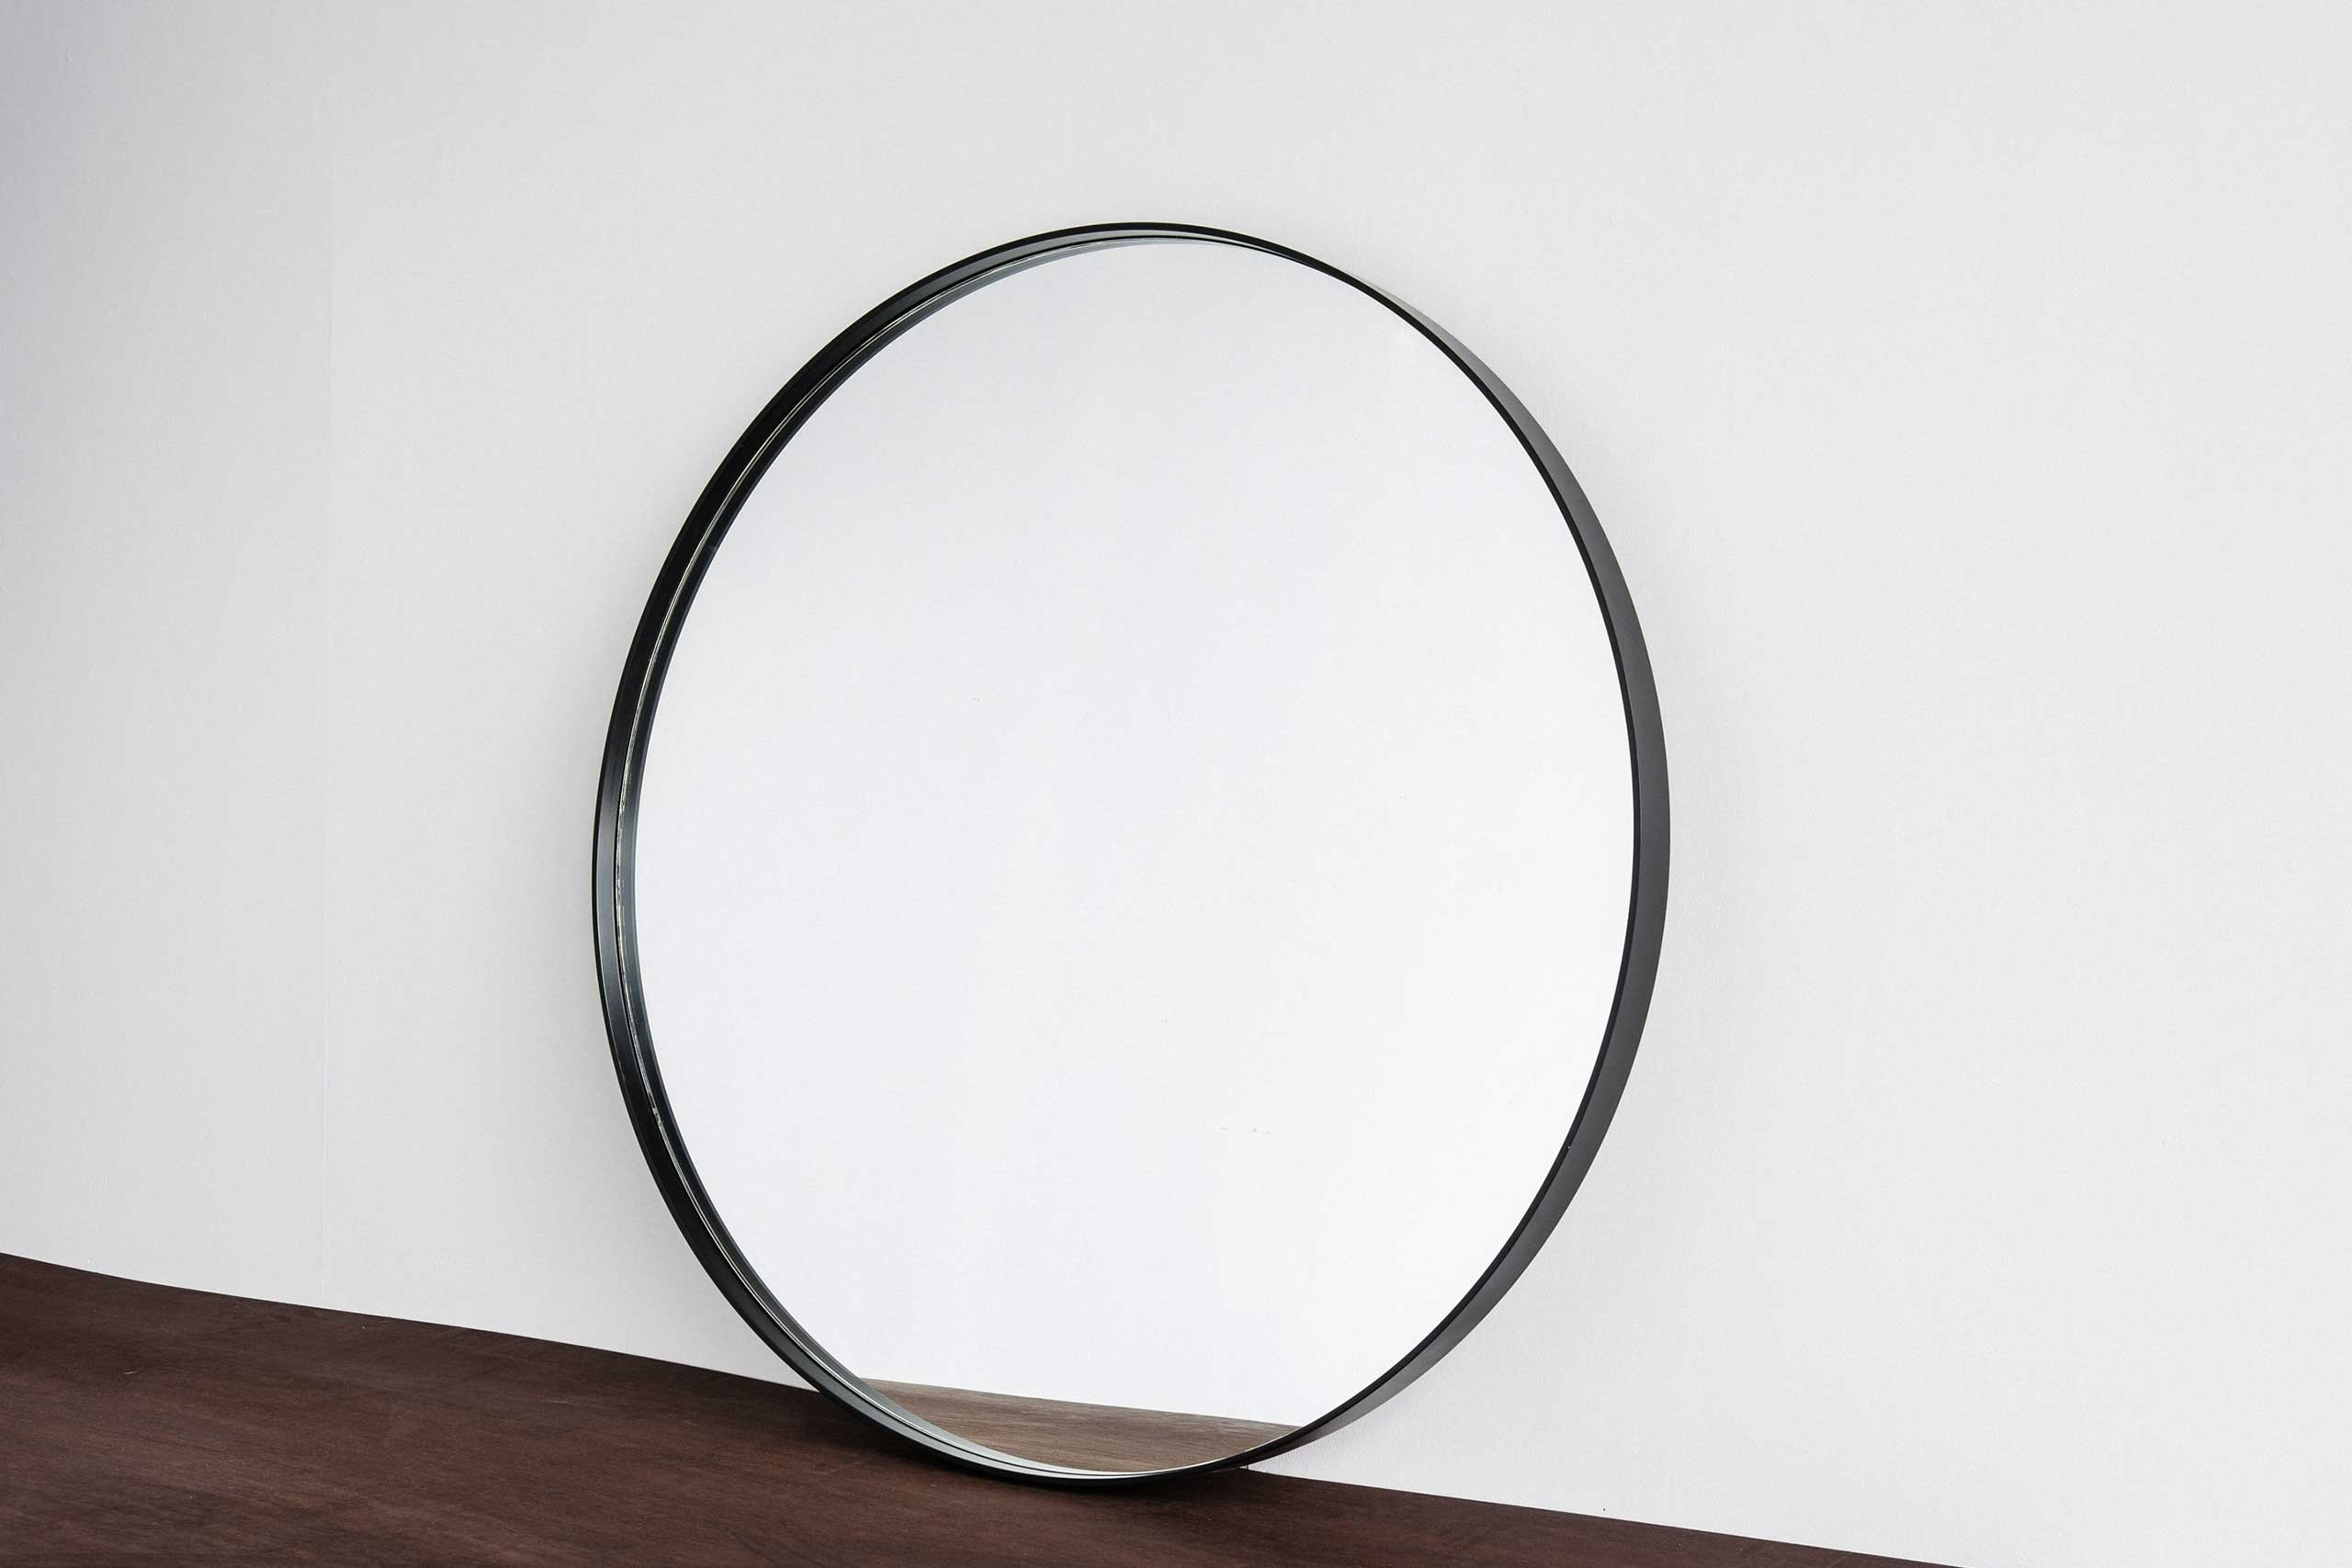 Home Industry Furniture Designed Handcrafted In New Zealand 2016 For Large Circle Mirrors (View 4 of 15)